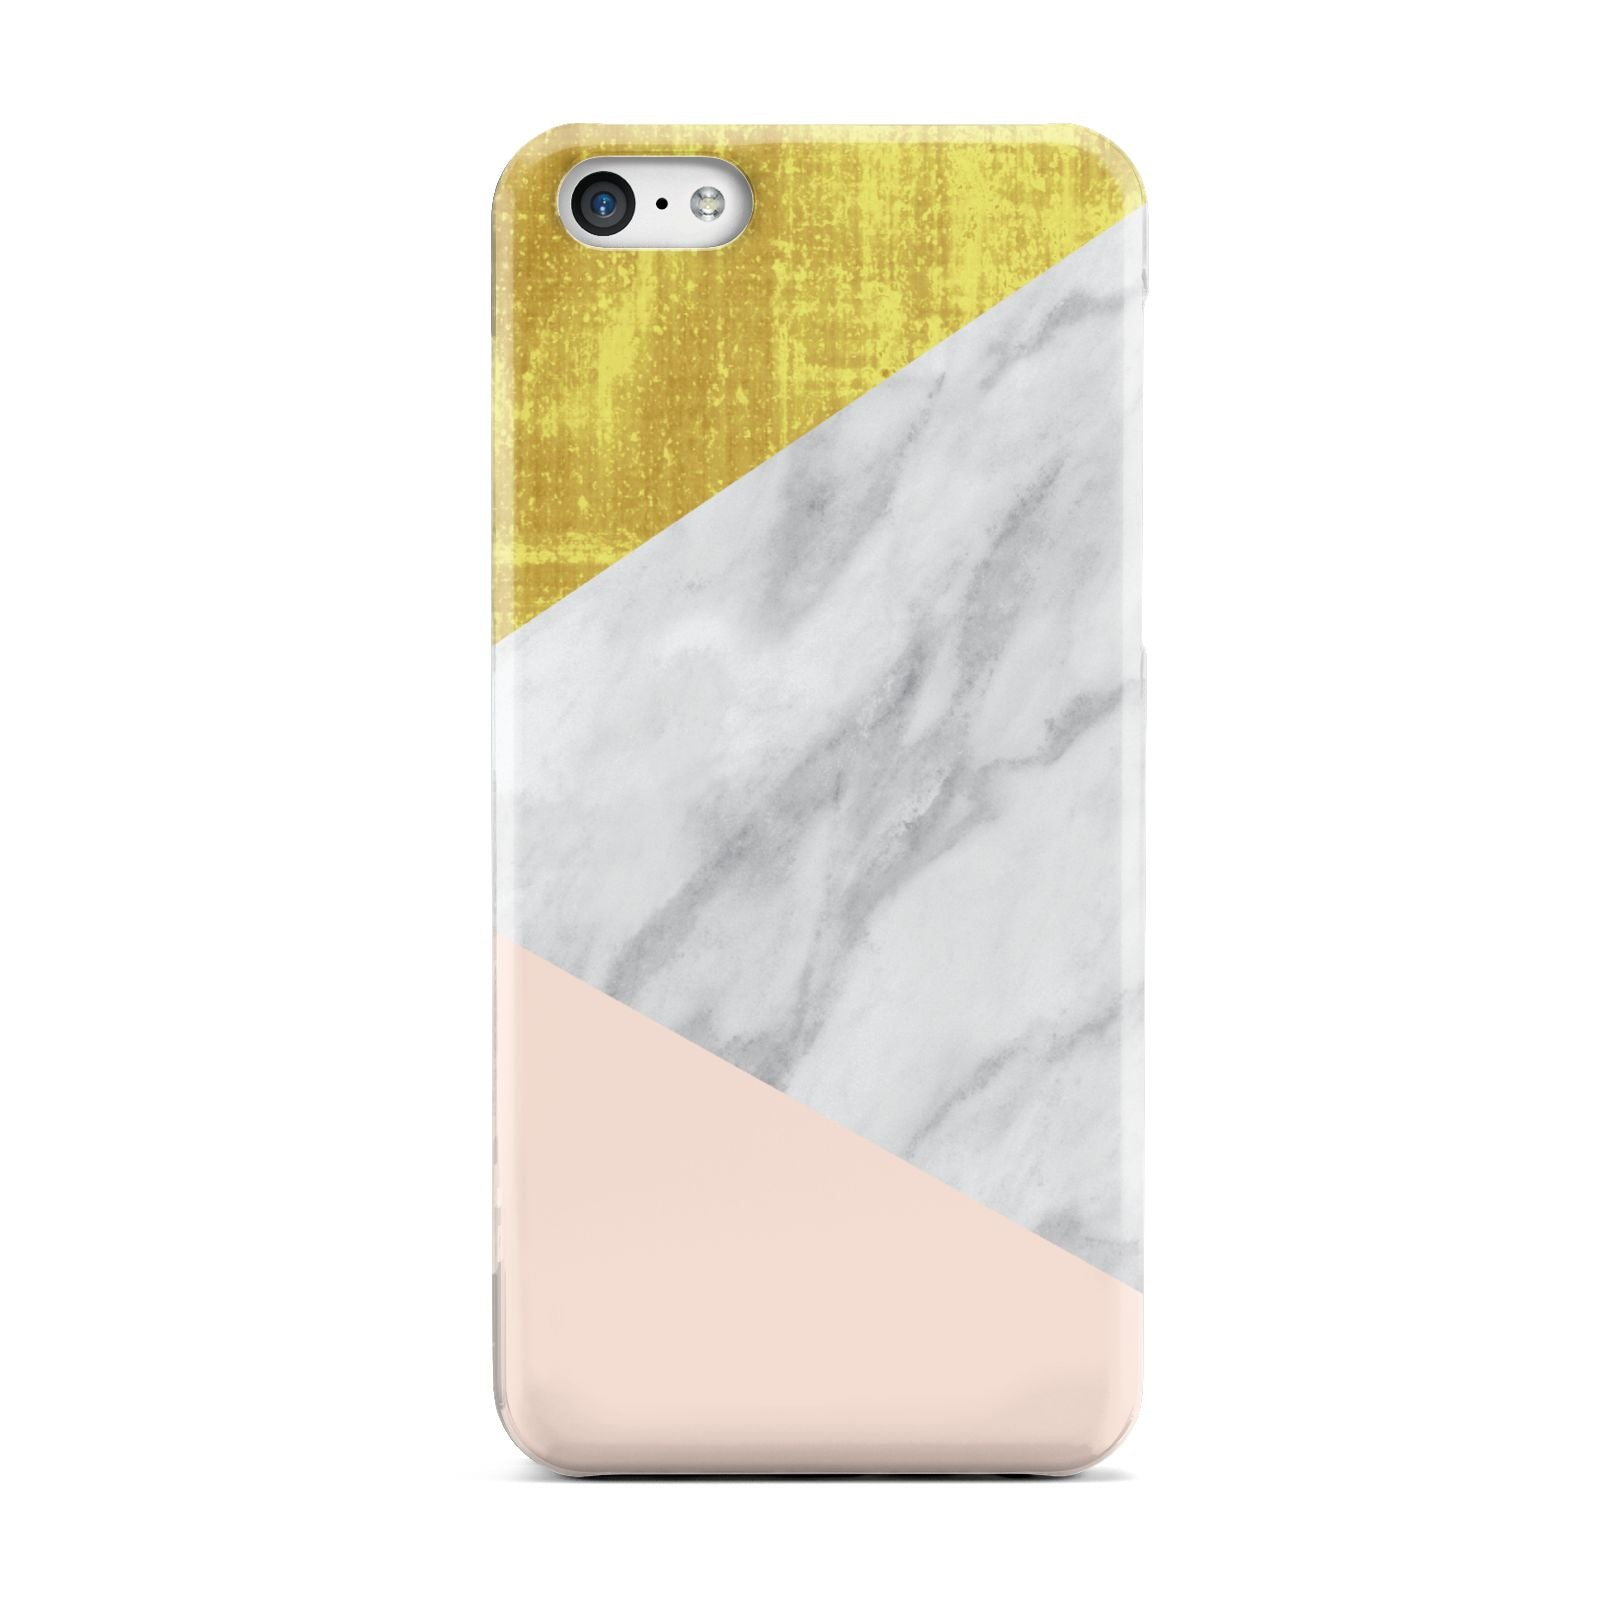 Marble White Gold Foil Peach Apple iPhone 5c Case